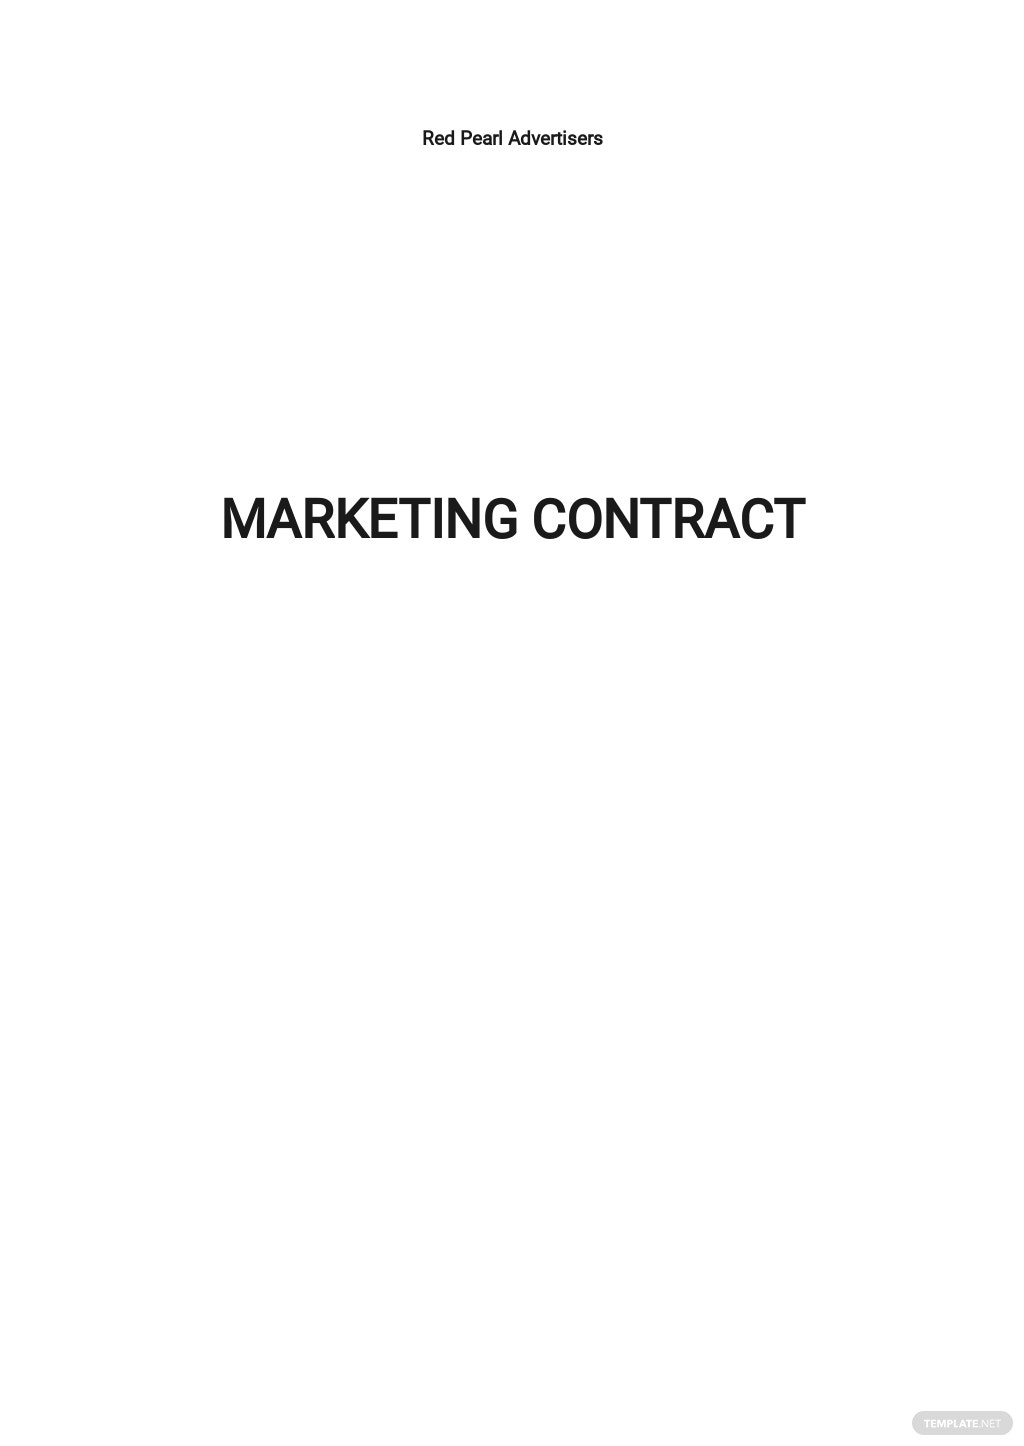 Sample Marketing Contract Template